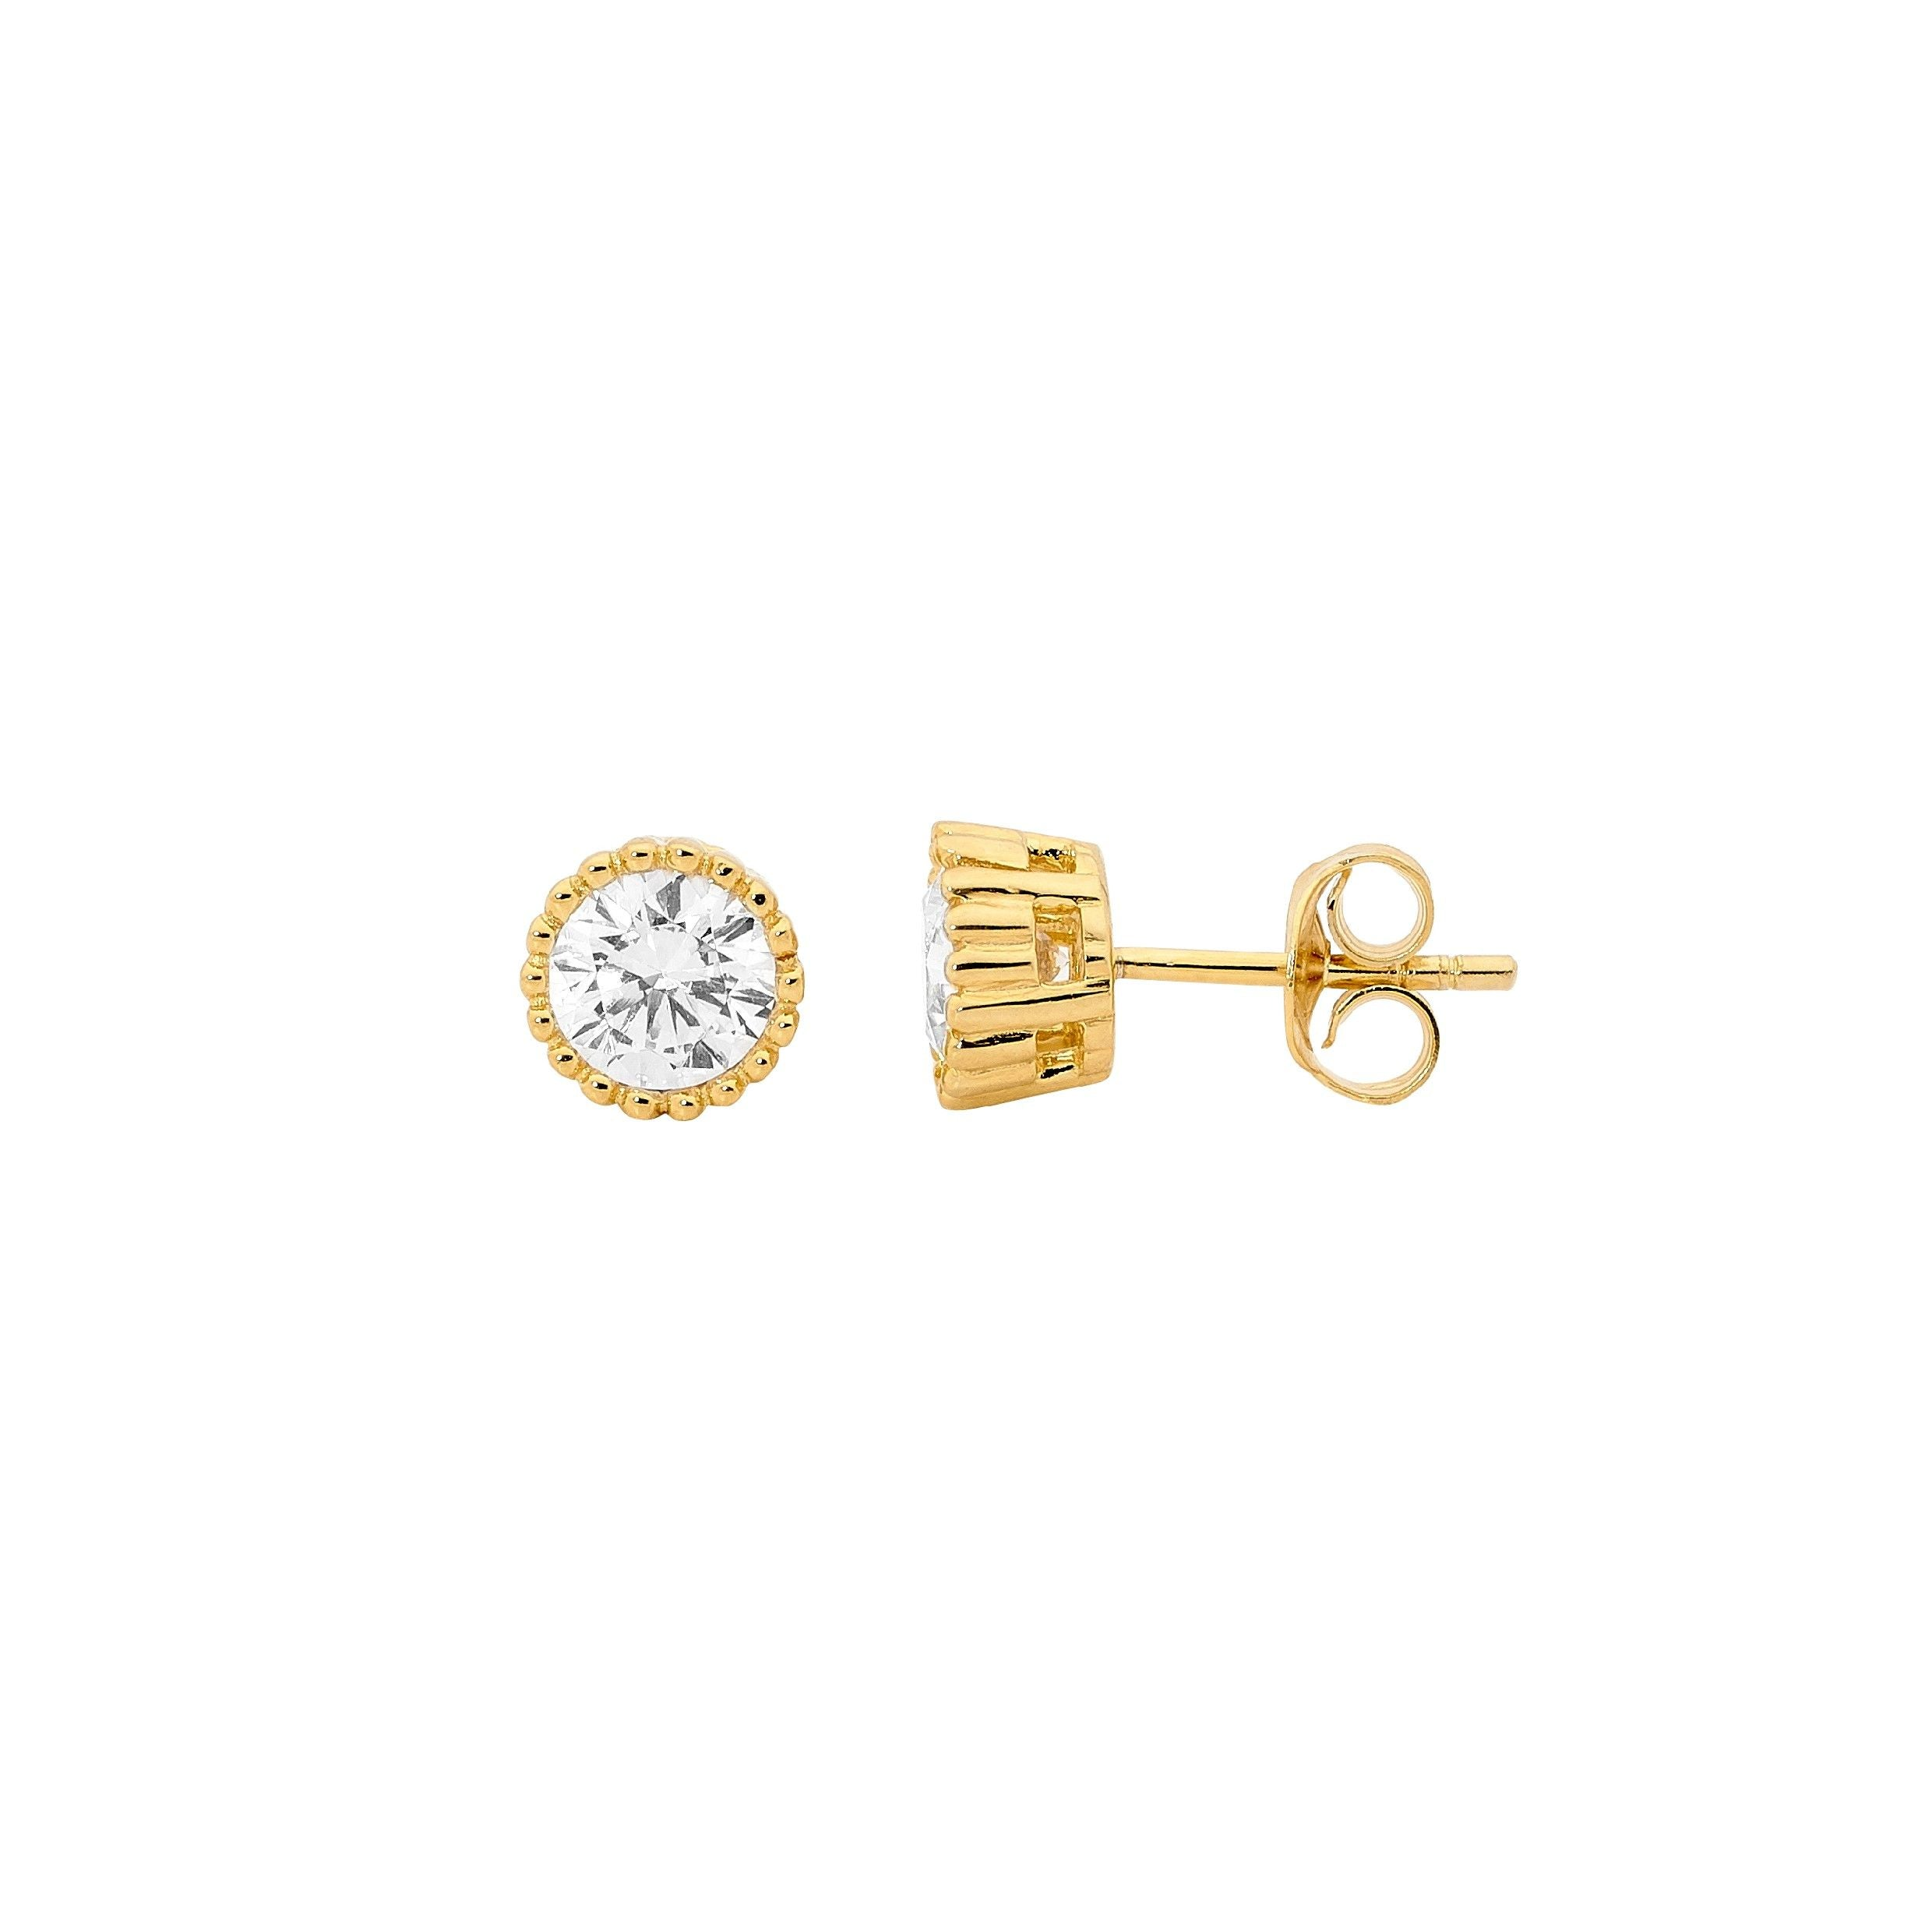 S/S 5MM WH CZ CROWN SET EARRINGS W/ GOLD PLATING